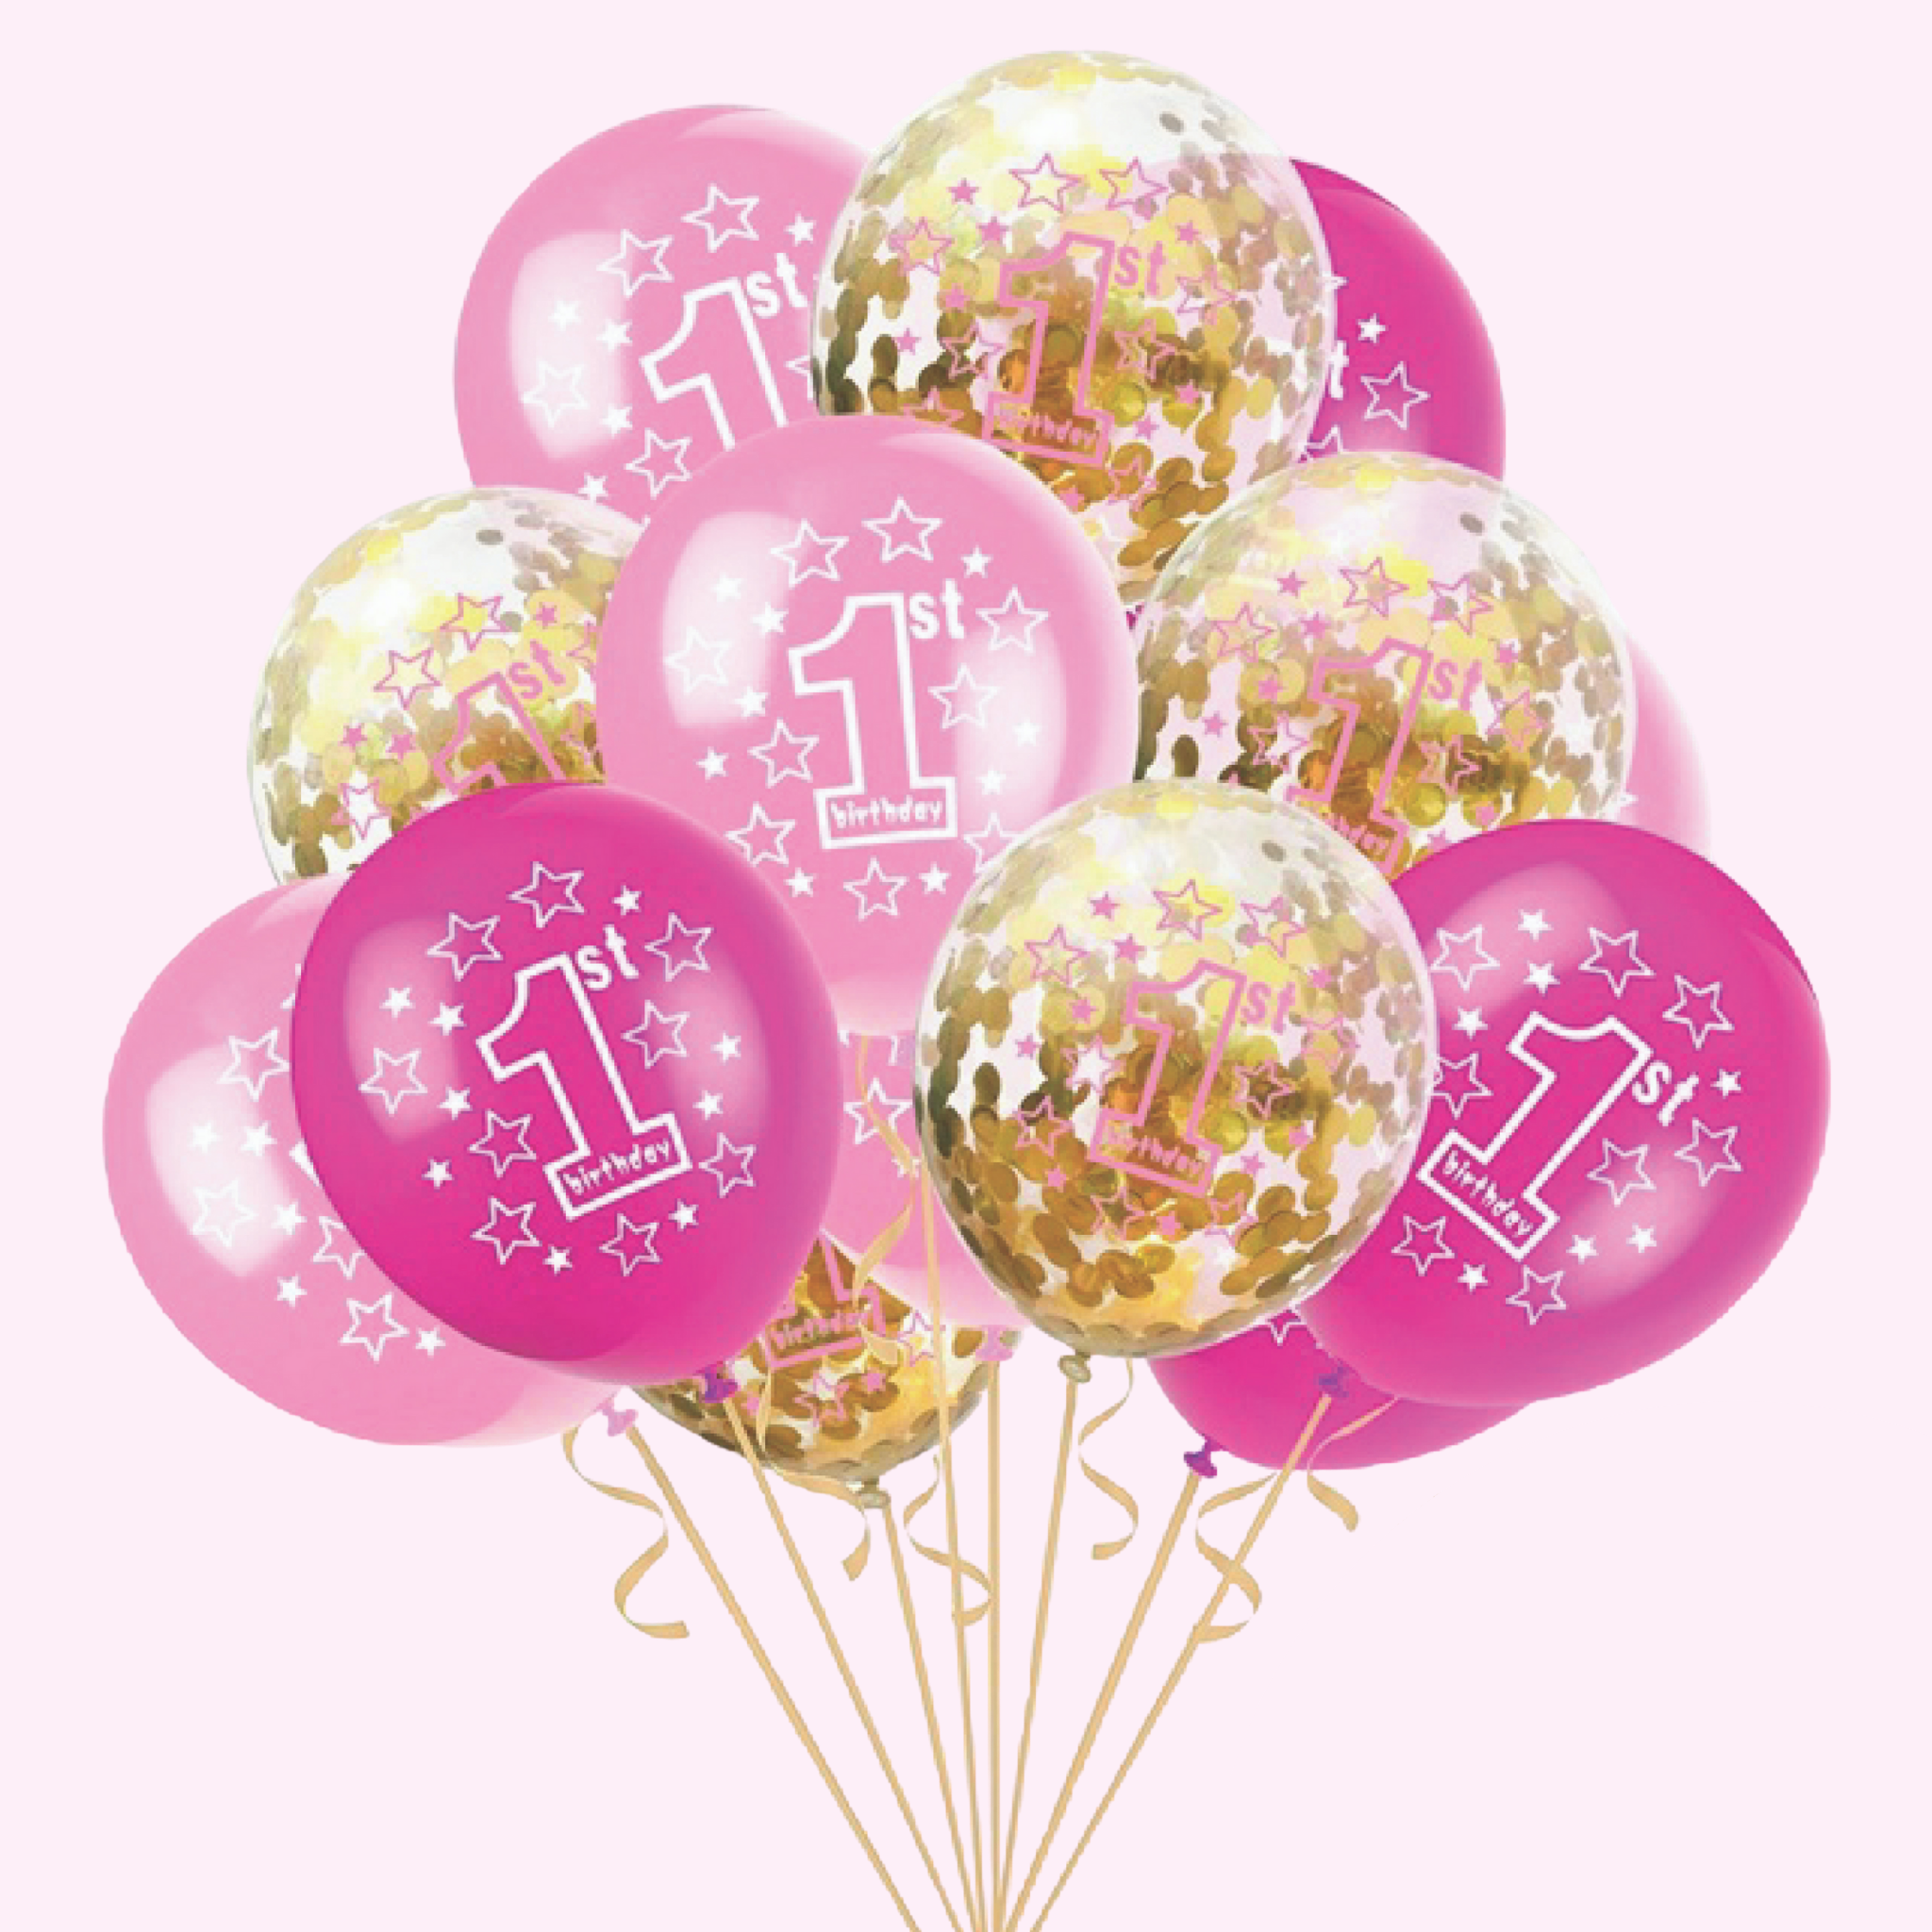 1st birthday - 15 Piece Pink & Gold Confetti Party Balloons Pack